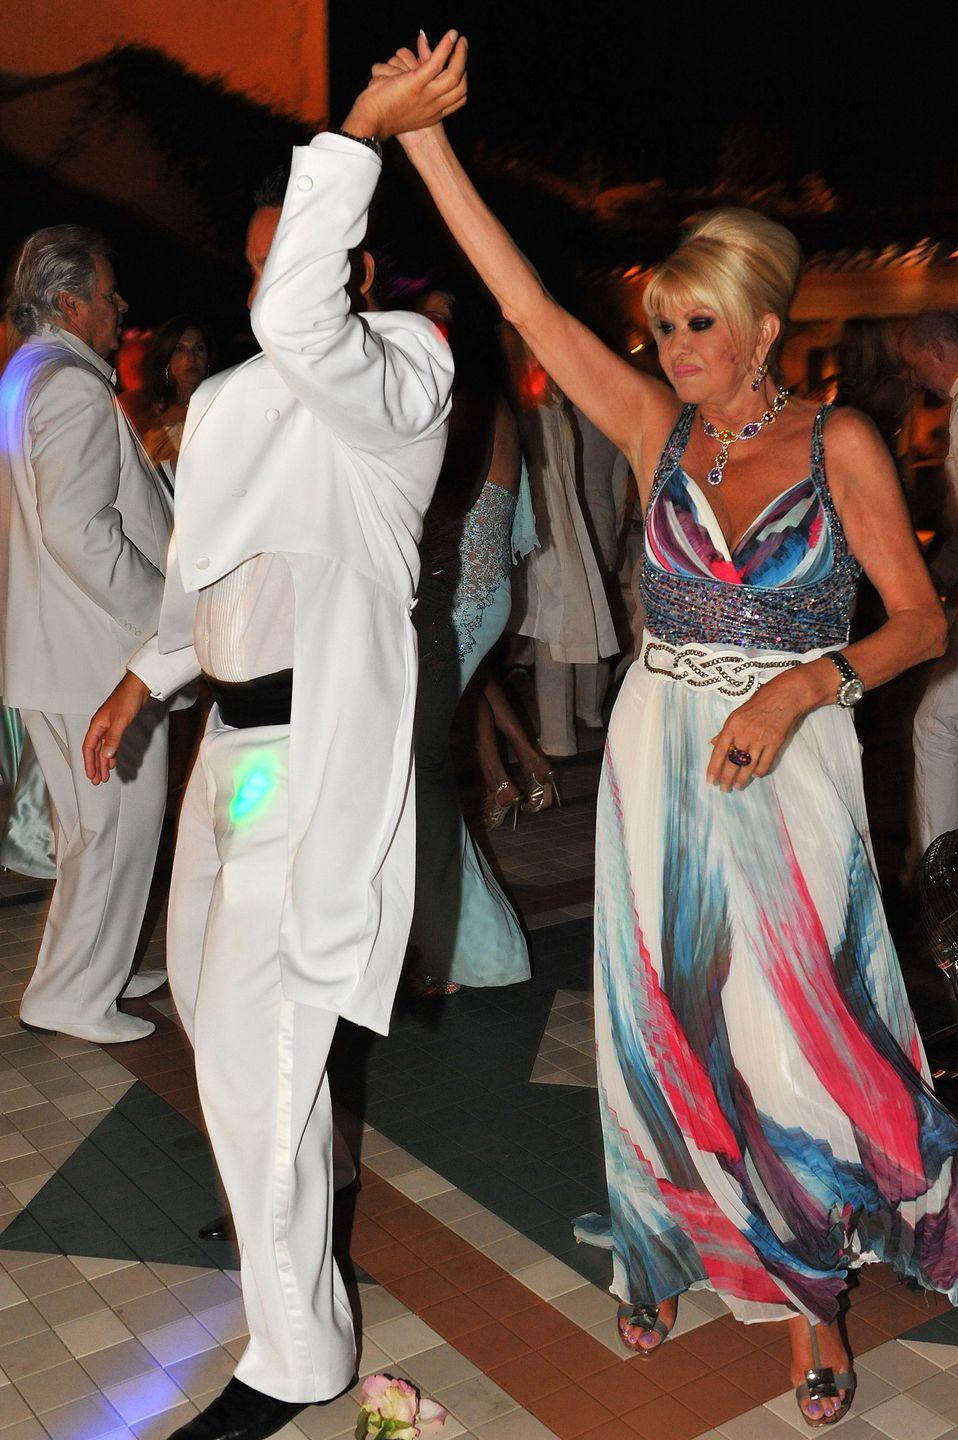 <p>Marcantonio Rota and Ivana Trump celebrate her birthday at a party in Saint-Tropez, France. </p><p>Other celebrity visitors this year: Naomi Watts, Liev Schreiber, Cristiano Ronaldo, Irina Shayk, Zac Efron, Ryan Seacrest.</p>